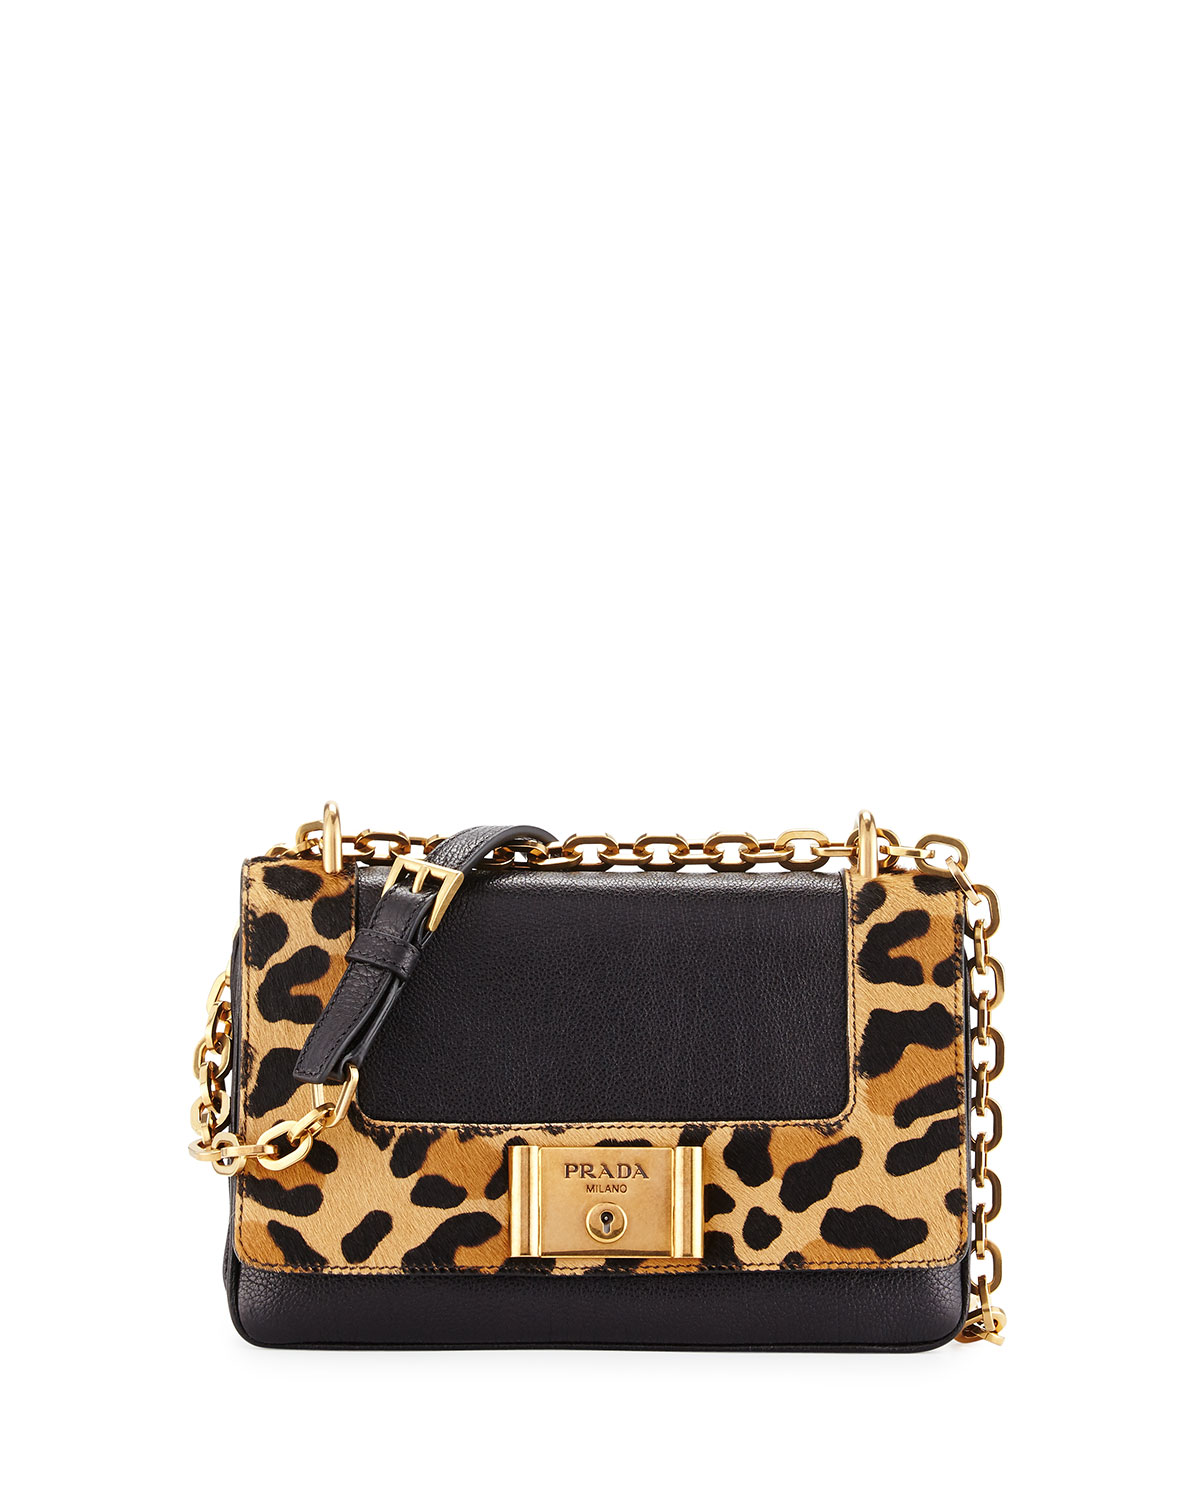 48034cc8e946 Prada Leopard-Print & Calfskin Flap Shoulder Bag, Black/Honey (Nero+ ...